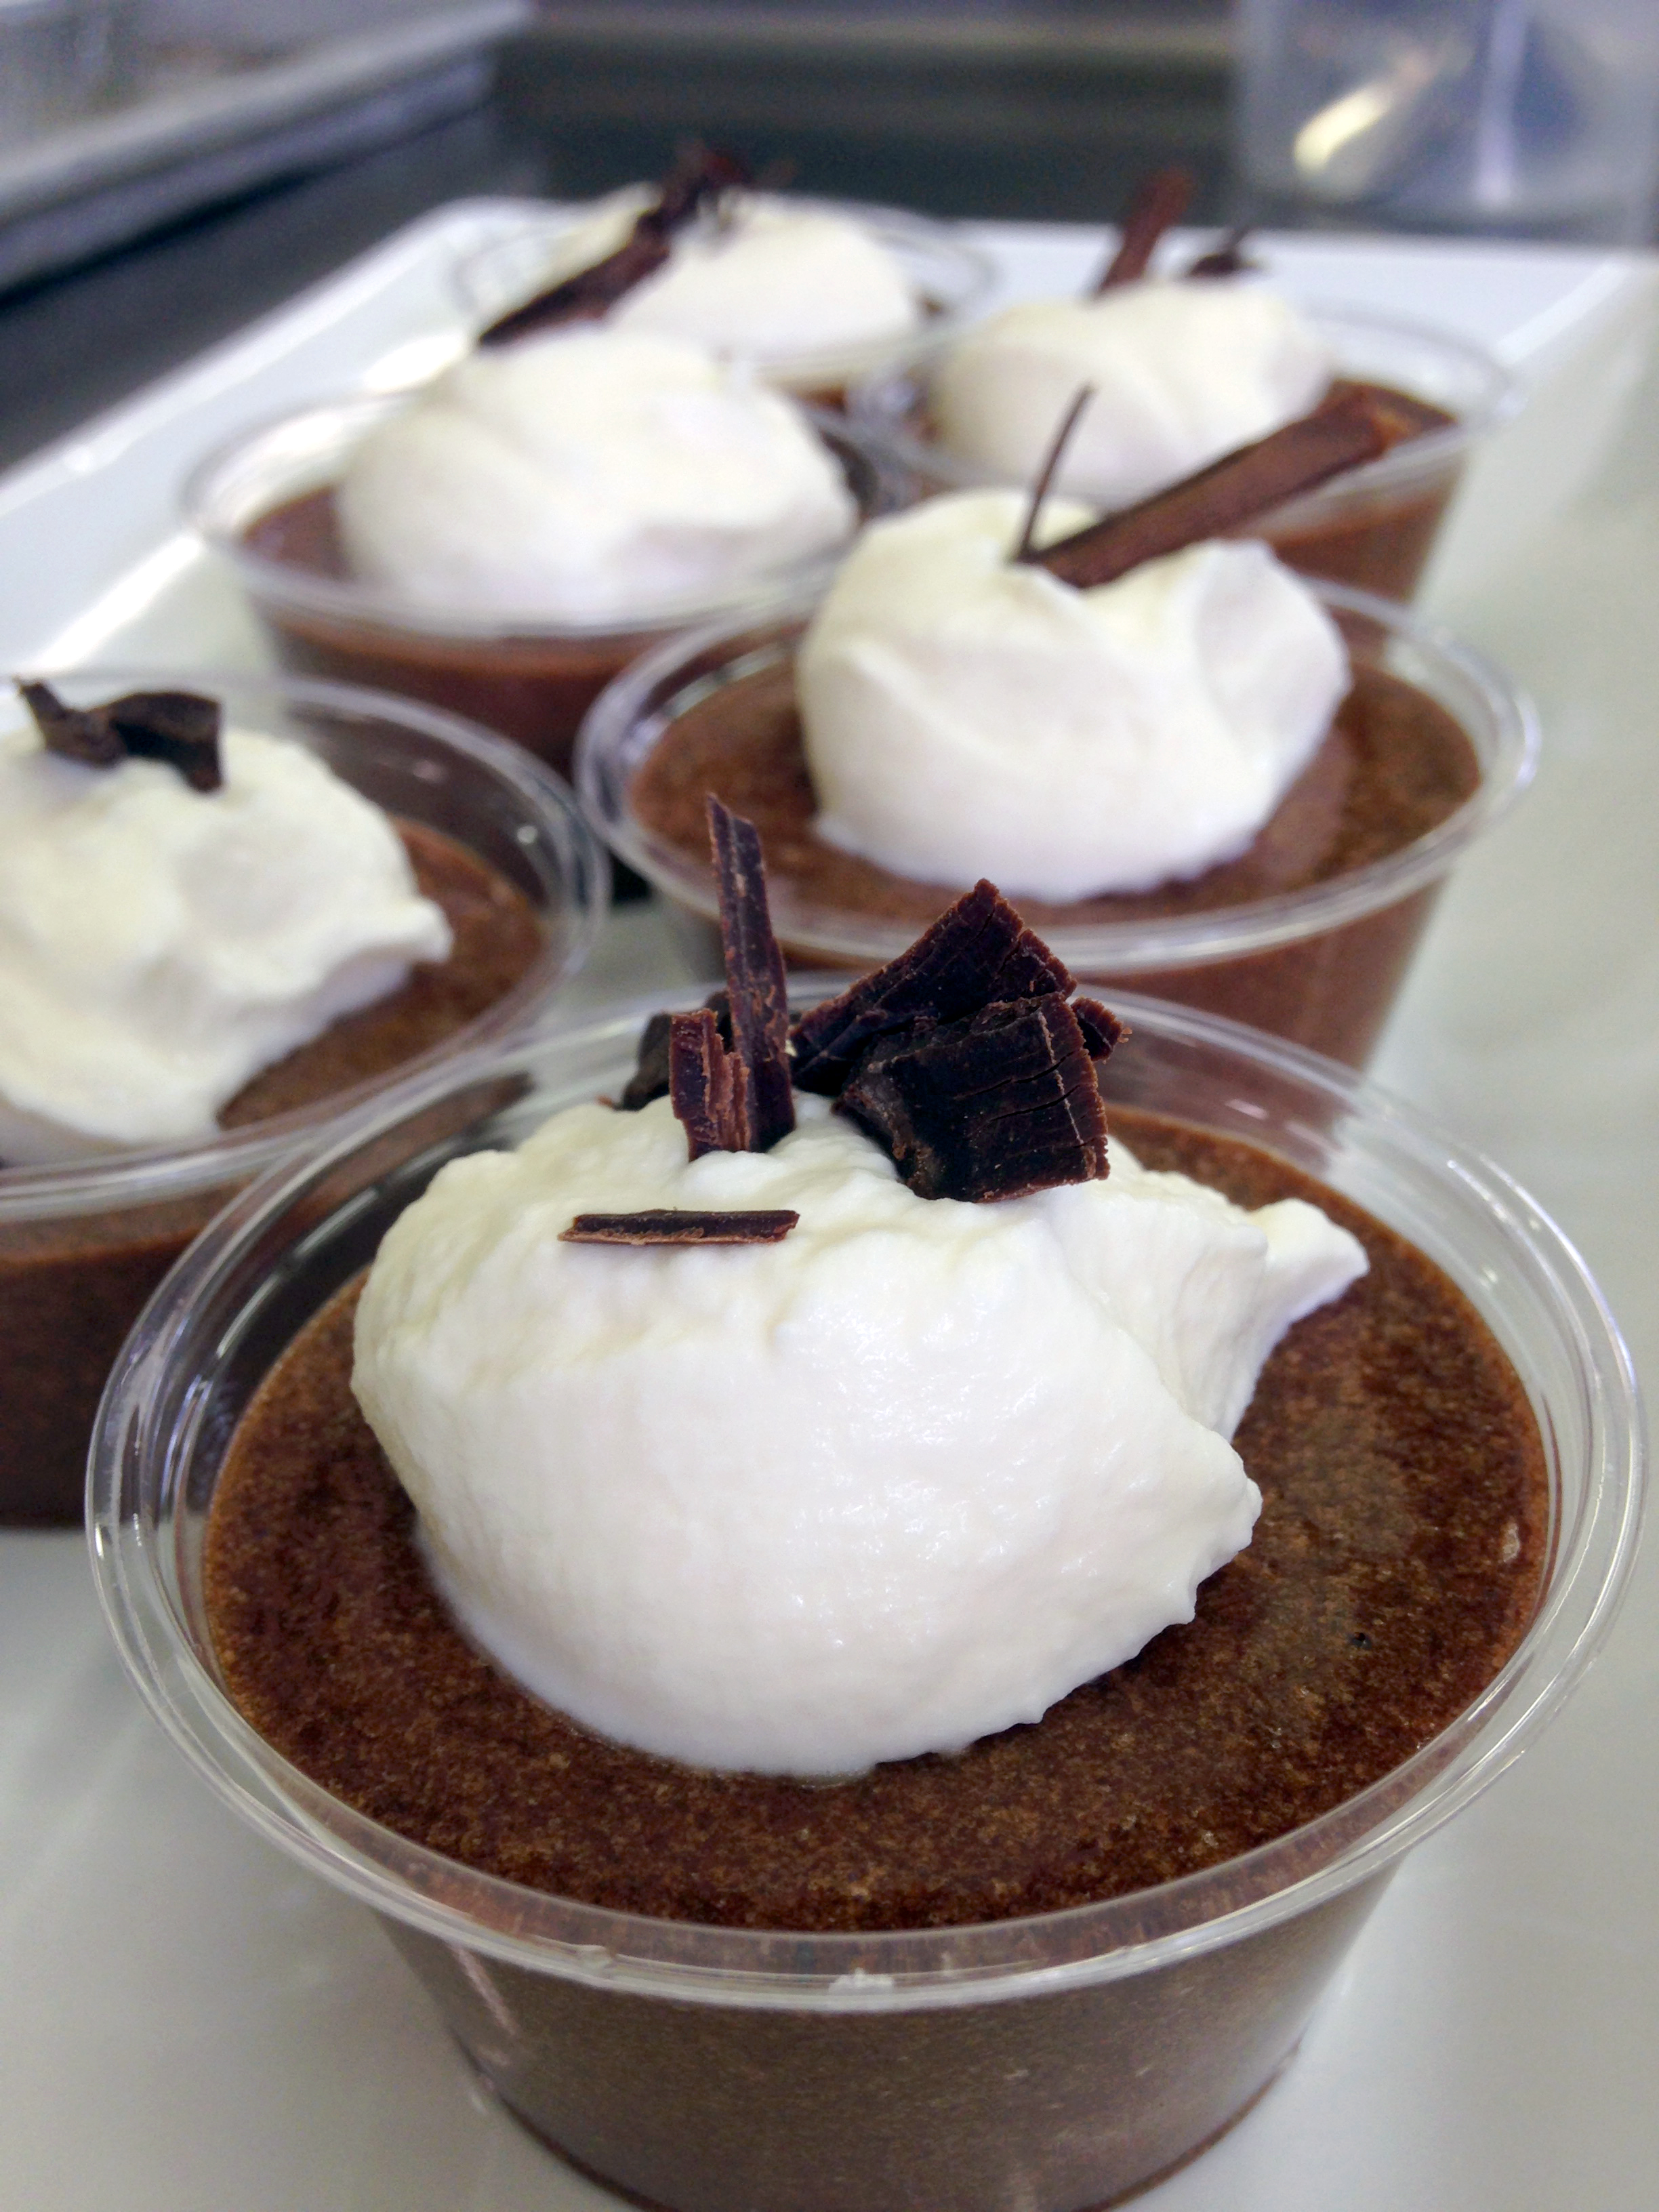 Little tastes of chocolate mousse made from Julia Child's recipe